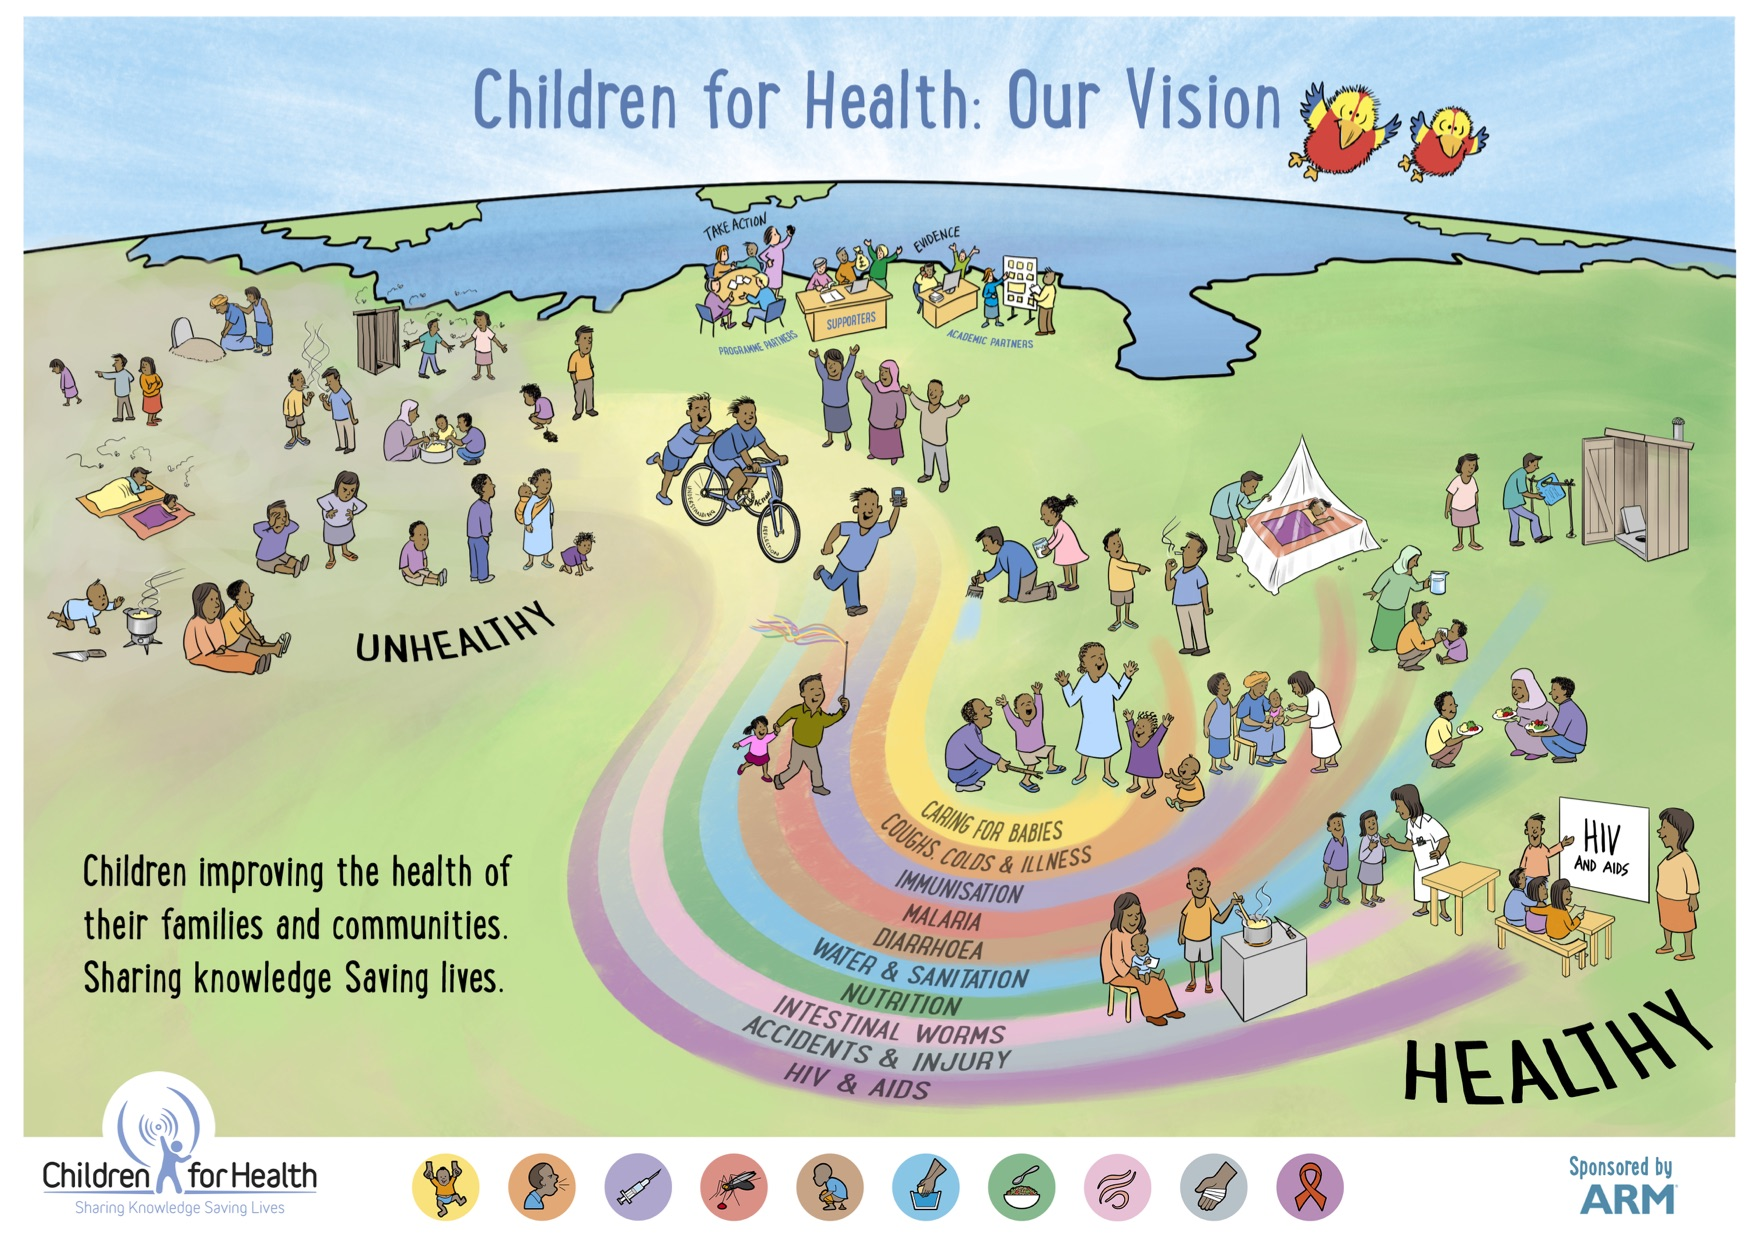 Children for Health Vision Poster with a rainbow making up our ten topics: Malaria, Diarrhoea, Coughs, Colds & Pneumonia, Caring for Babies & Young Children, Intestinal Worms, Nutrition, Water, Sanitation & Hygiene, Immunisation, HIV & AIDS and Accidents & Preventing Injuries.